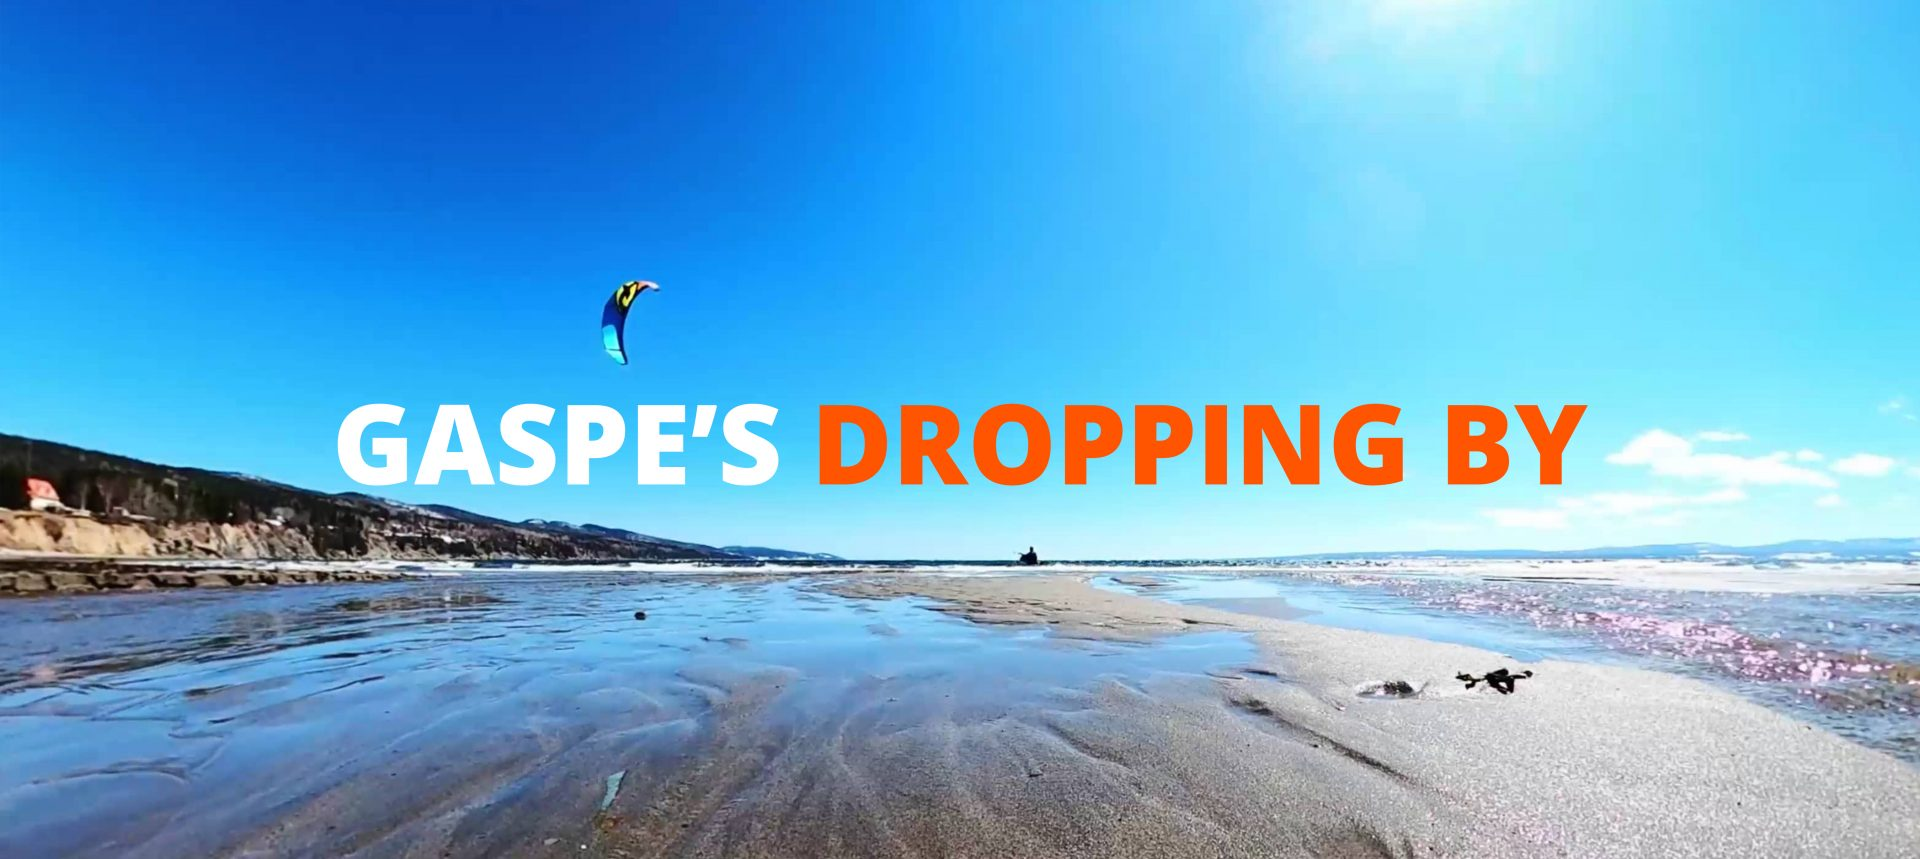 Gaspe's dropping by : The beach at home